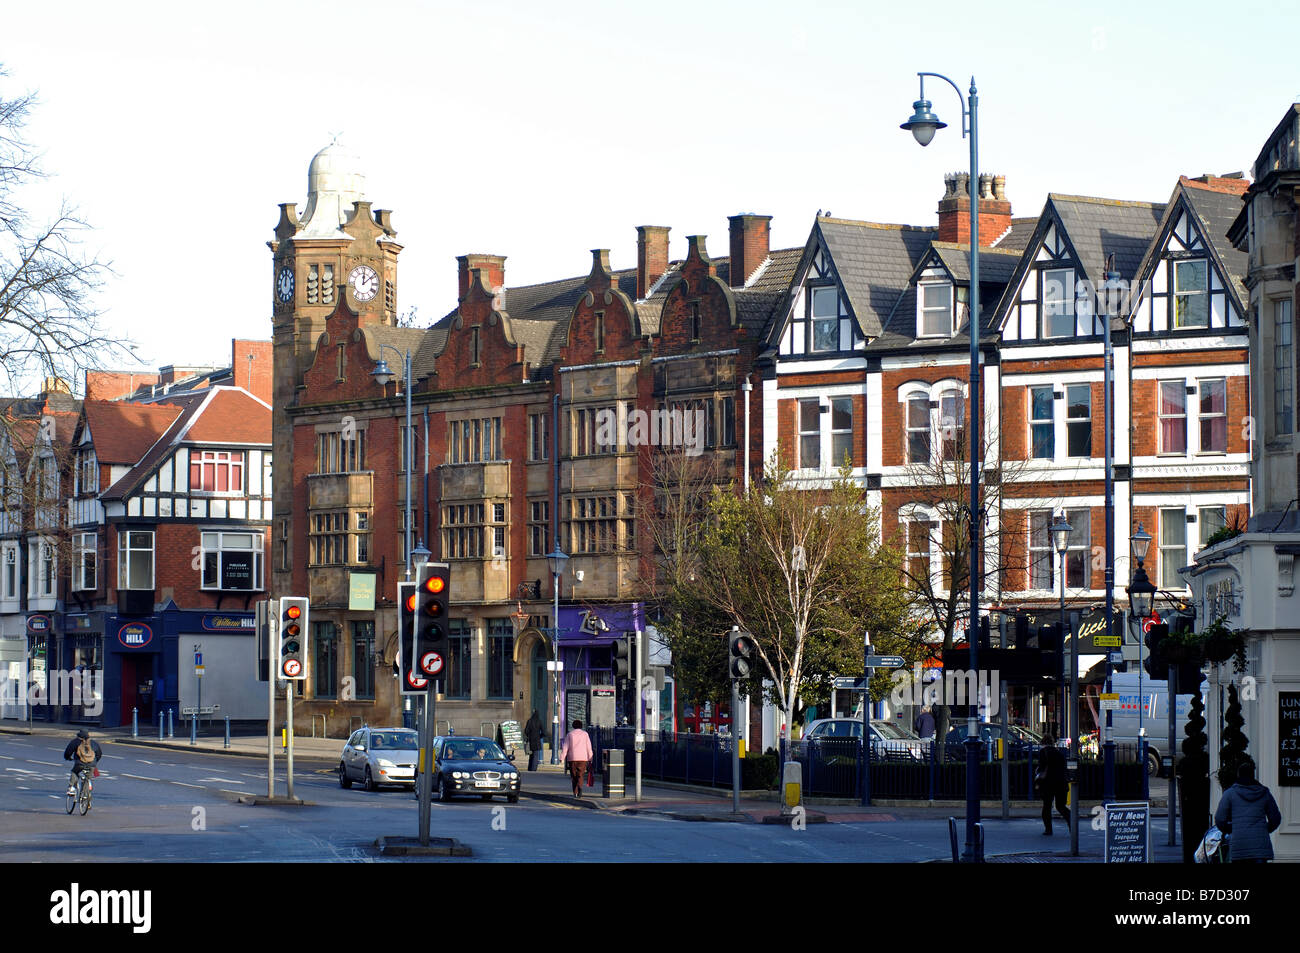 Moseley village centre, Birmingham, England, UK Stock Photo